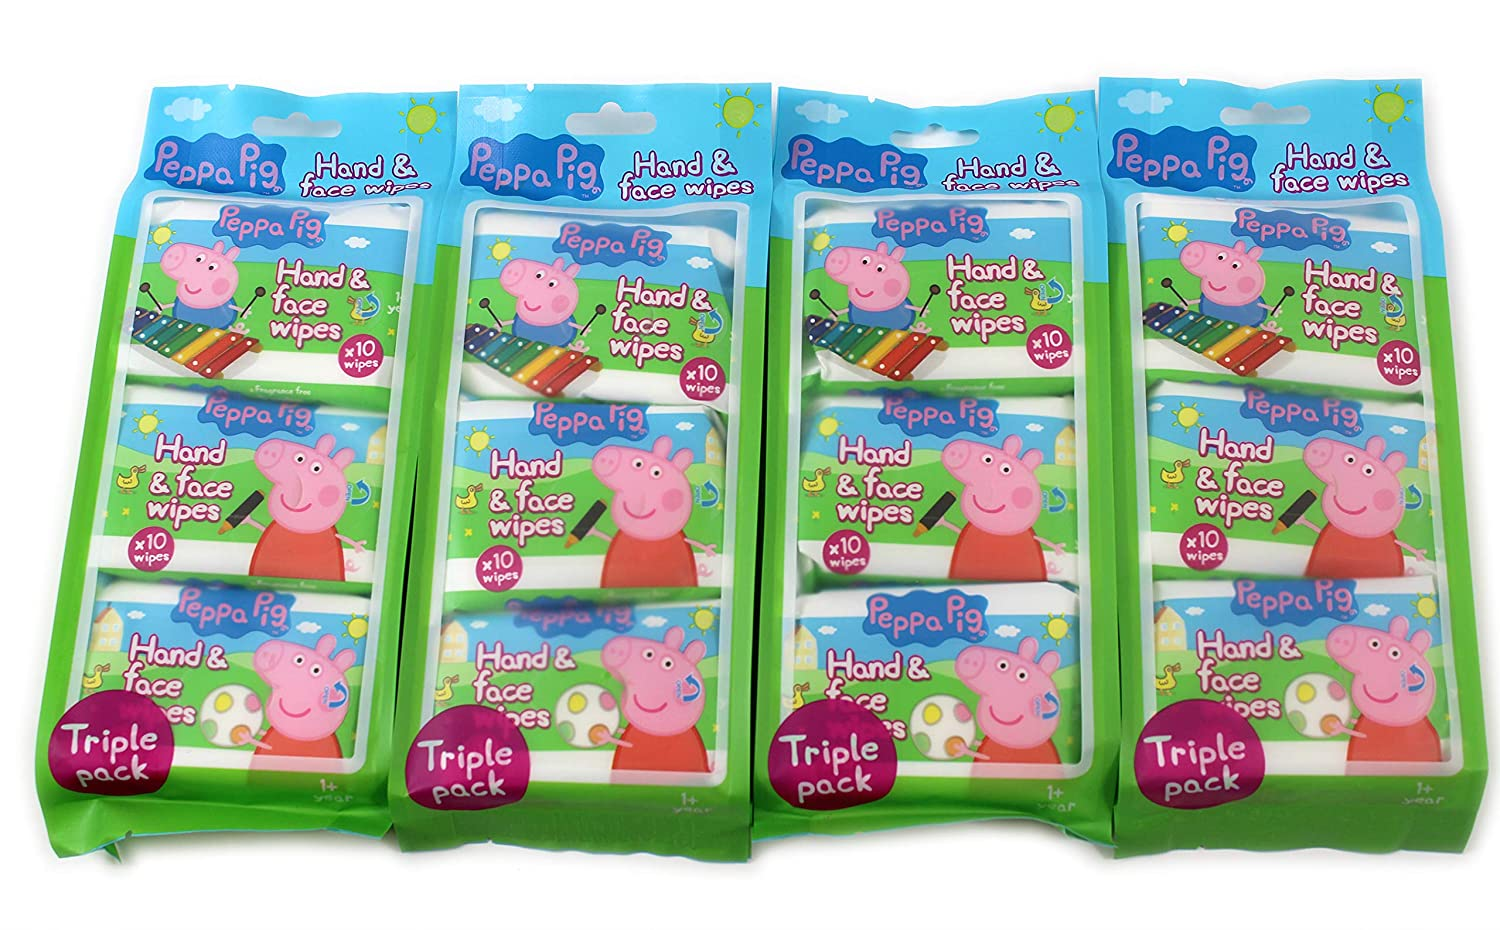 Peppa Pig Hand & Face Wipes for Kids Babies 30 Wipes Per Pack Disposable Towel (4 Packs (120 Wipes)) giftsbynet